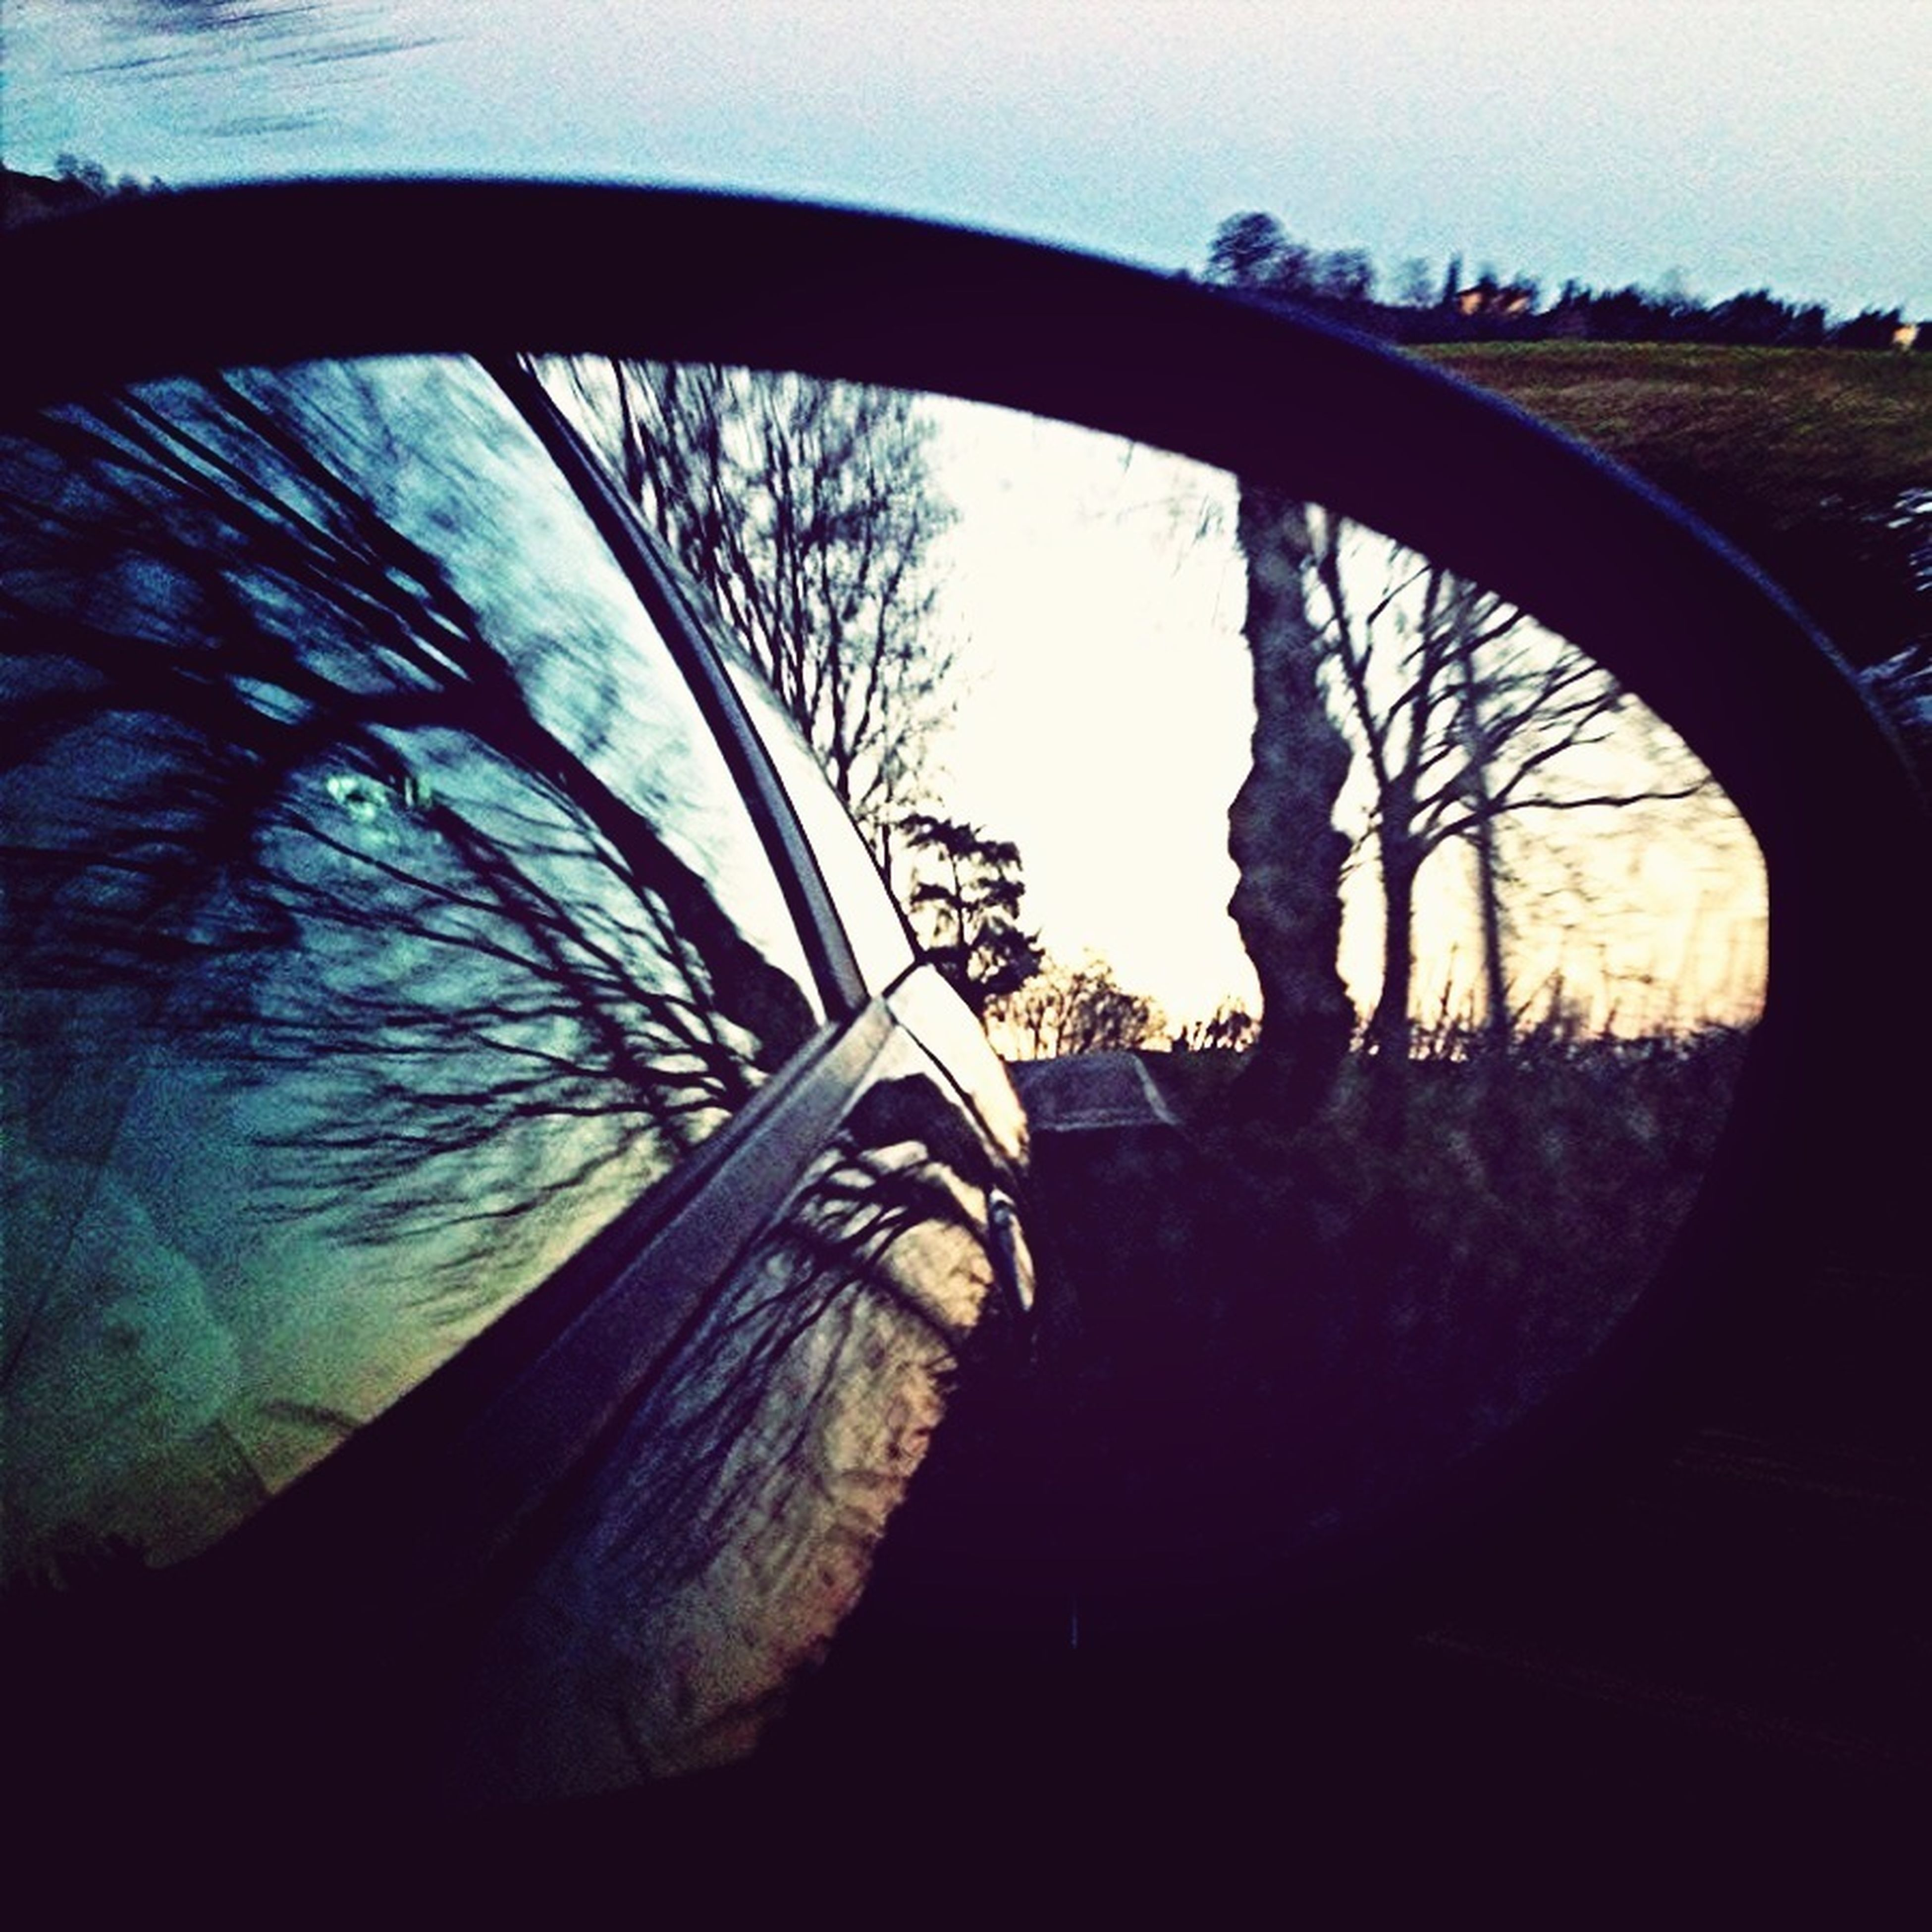 transportation, mode of transport, tree, land vehicle, reflection, sky, part of, wheel, cropped, circle, close-up, car, no people, day, outdoors, bicycle, road, nature, tire, side-view mirror